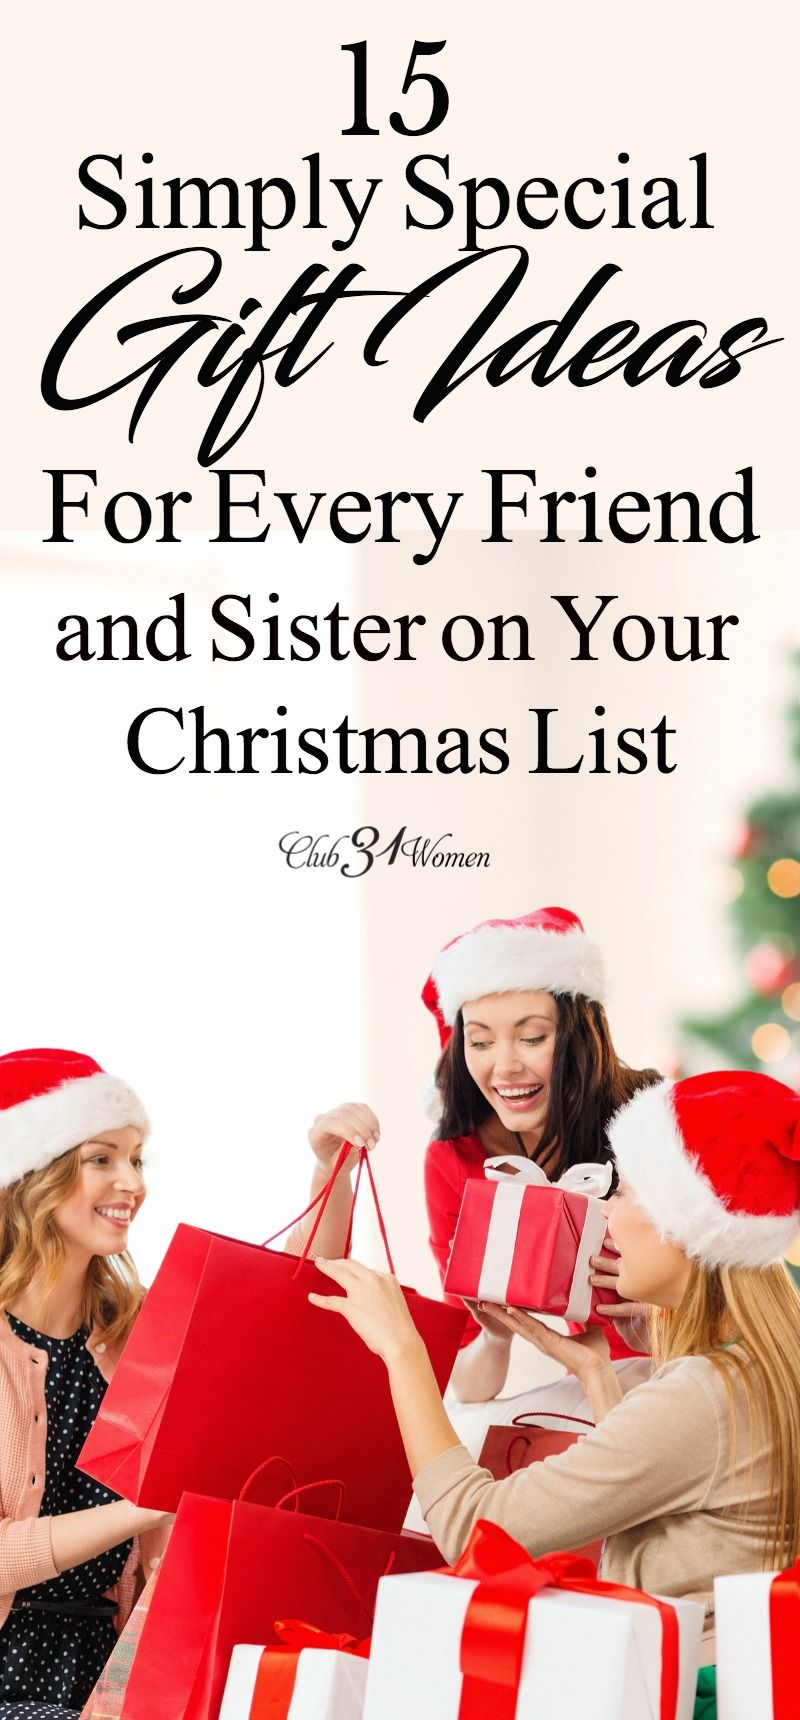 How to choose the perfect gift for a friend